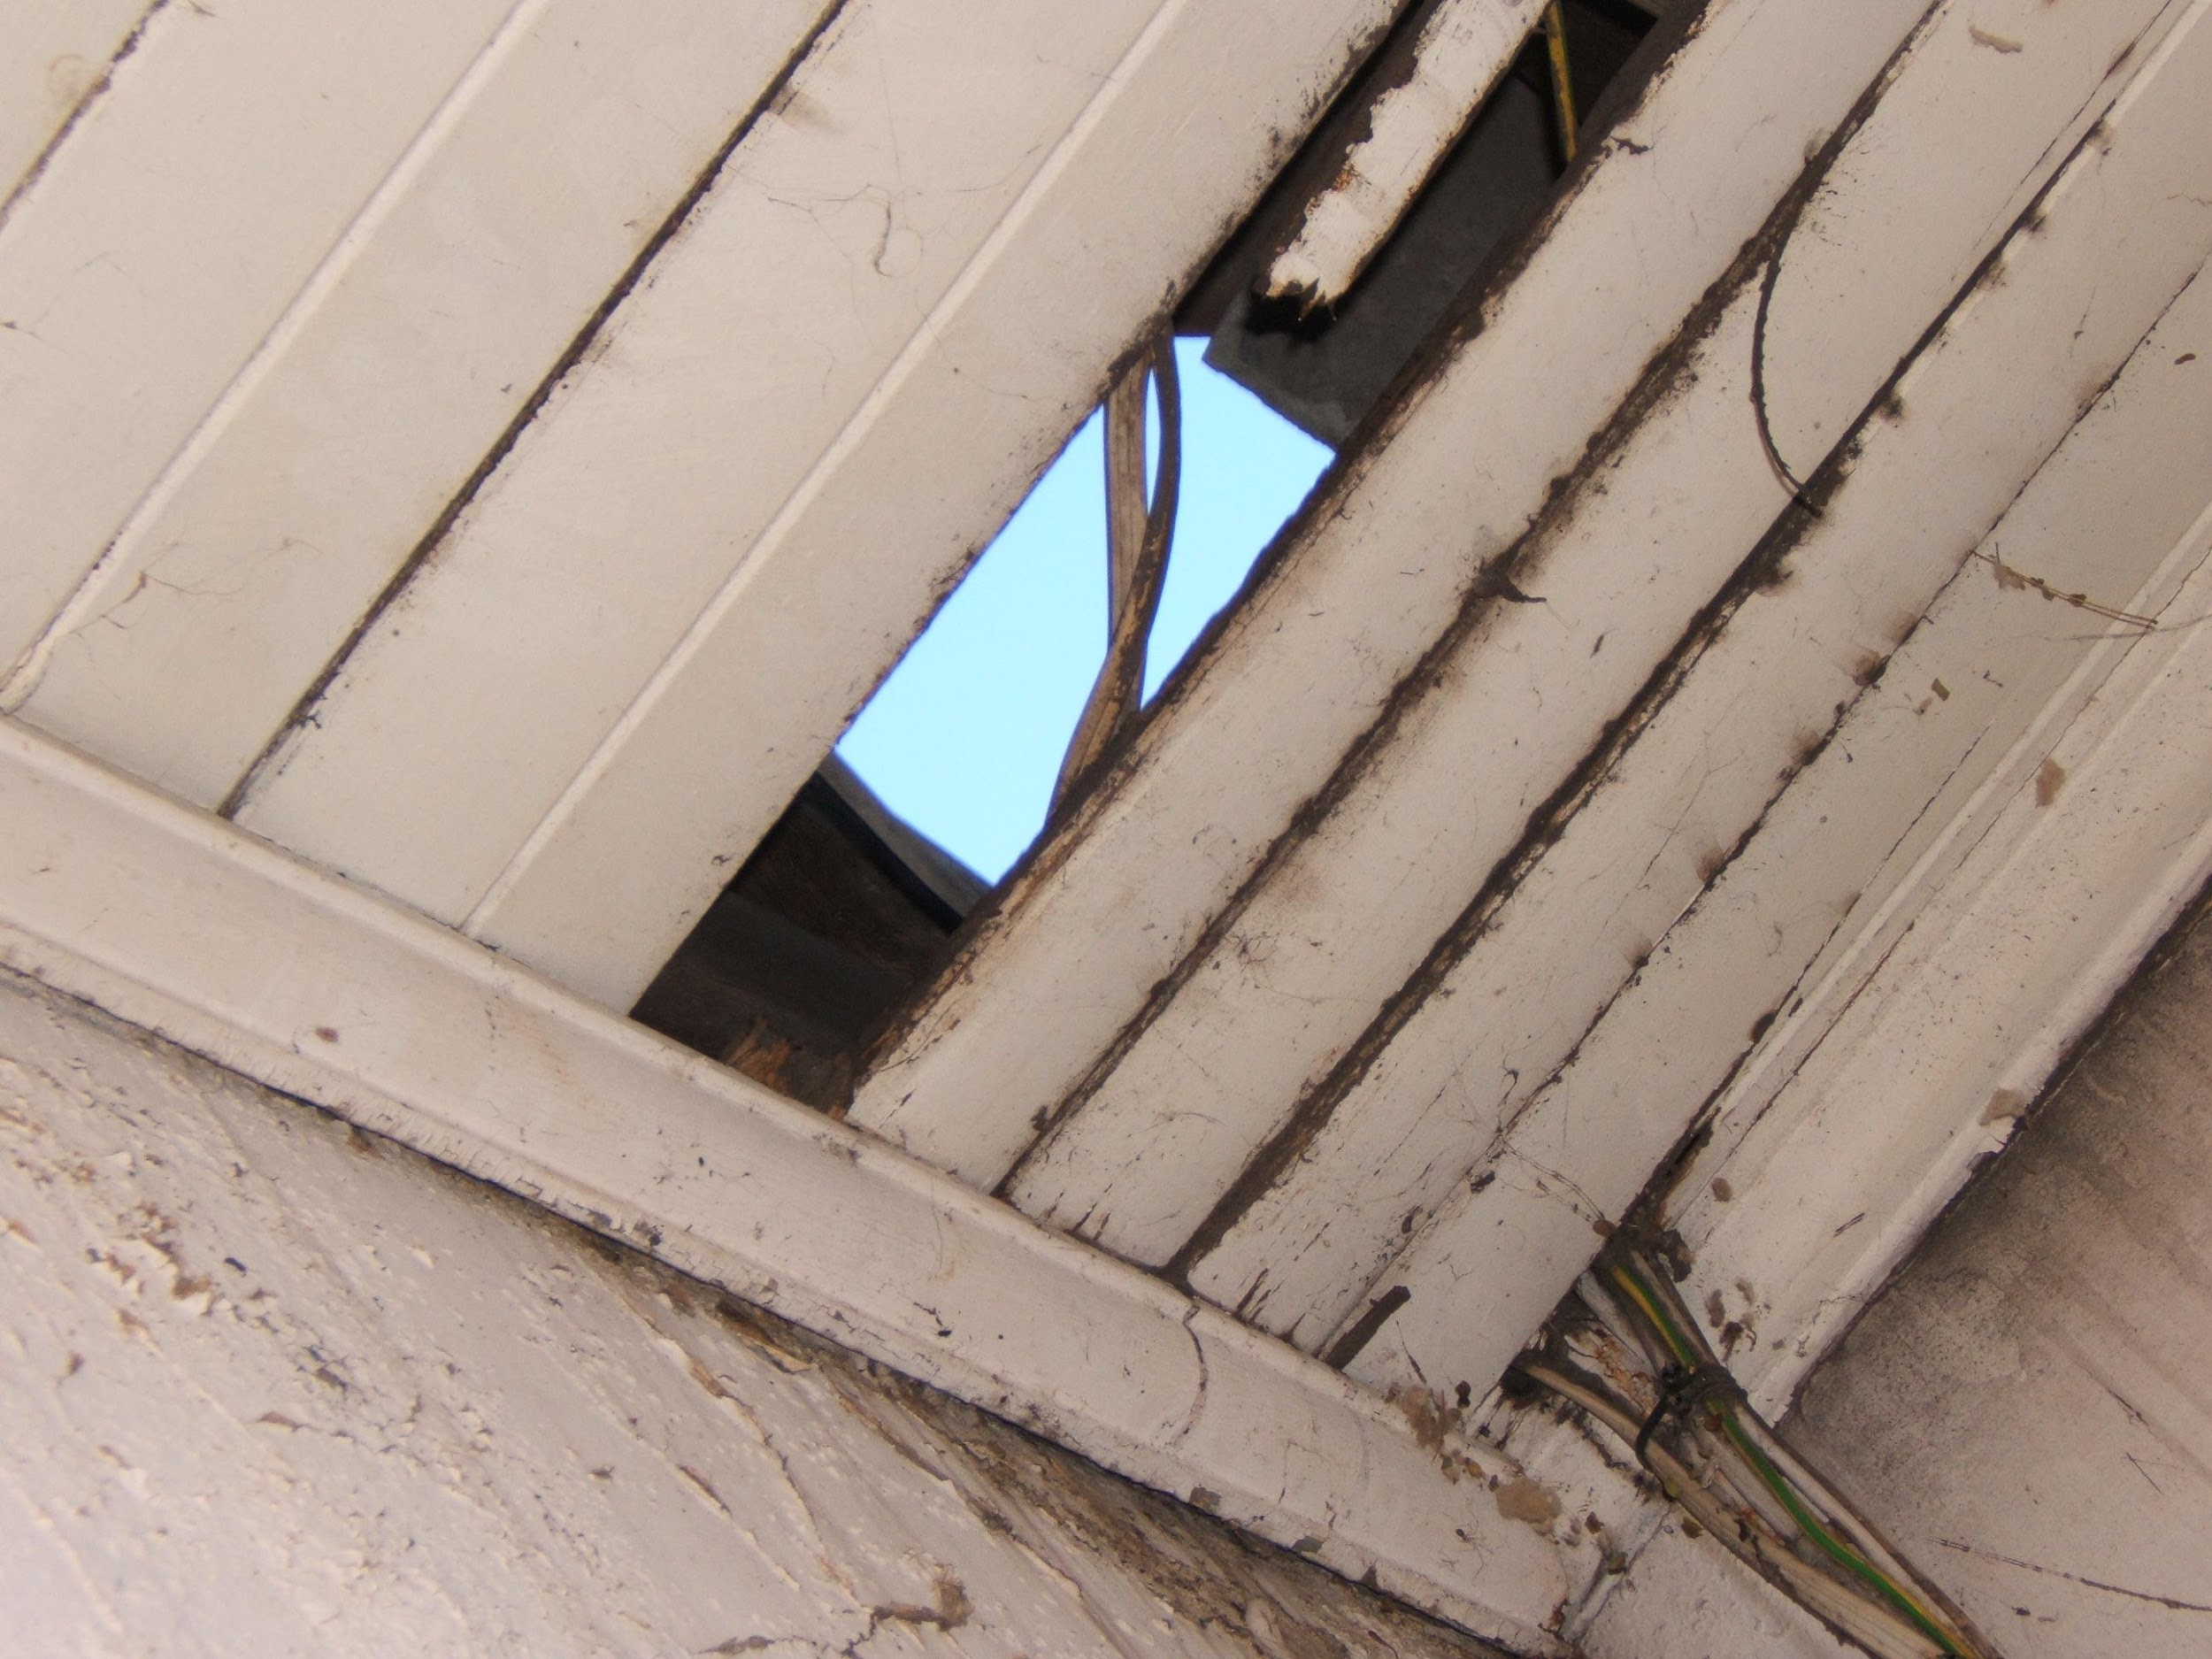 photograph of a roof with missing timber pieces. The sky is clearly visible.